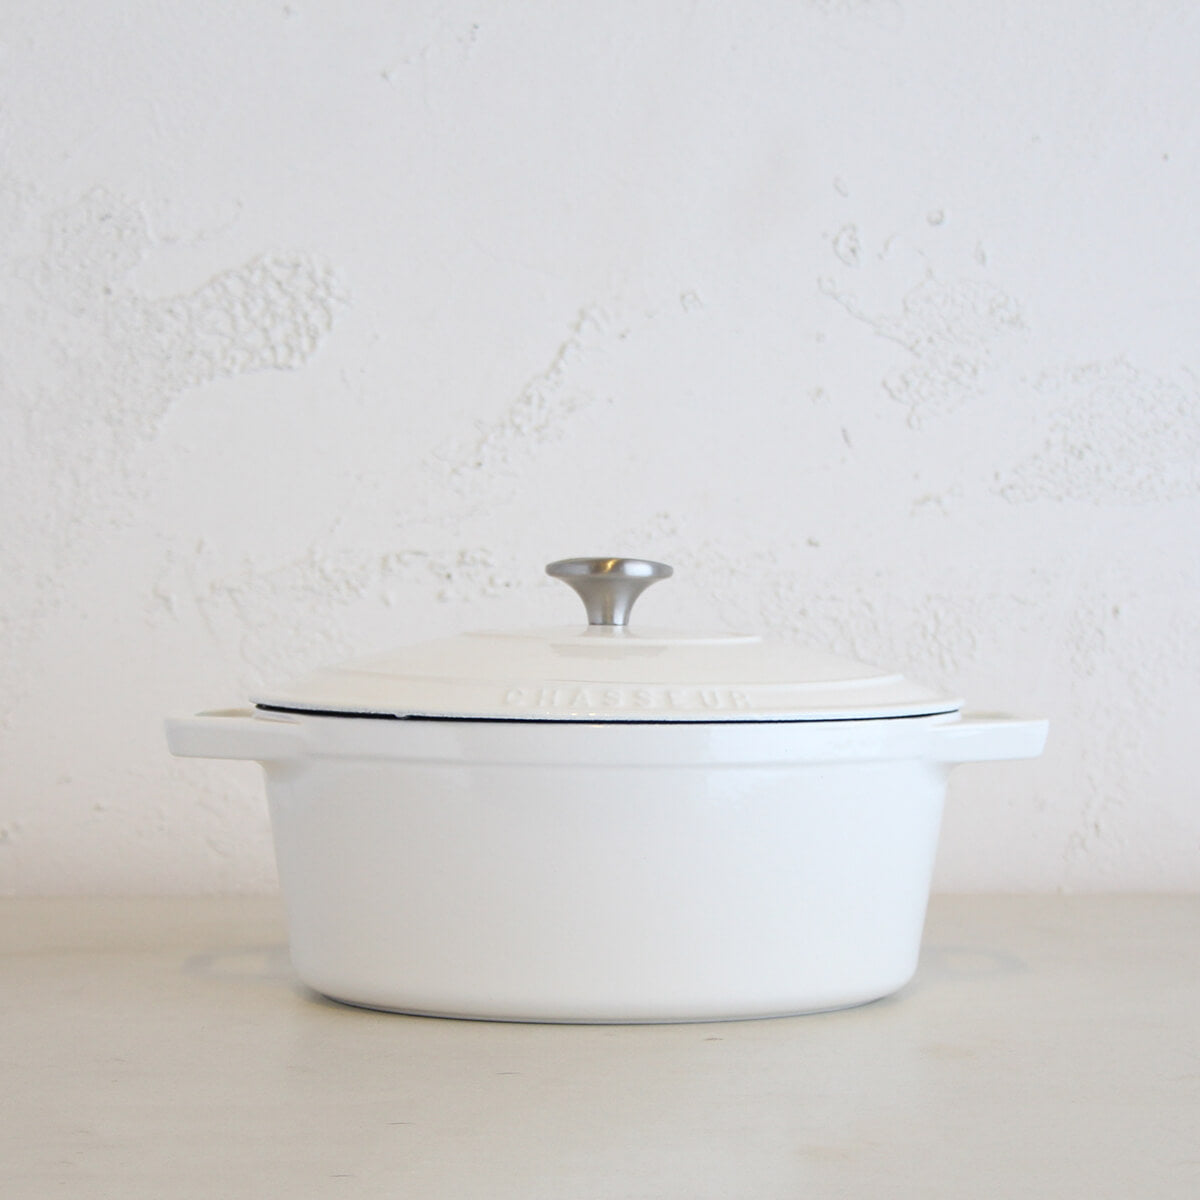 CHASSEUR  |  OVAL FRENCH OVEN  |  WHITE  |   FRENCH ENAMEL COOKWARE